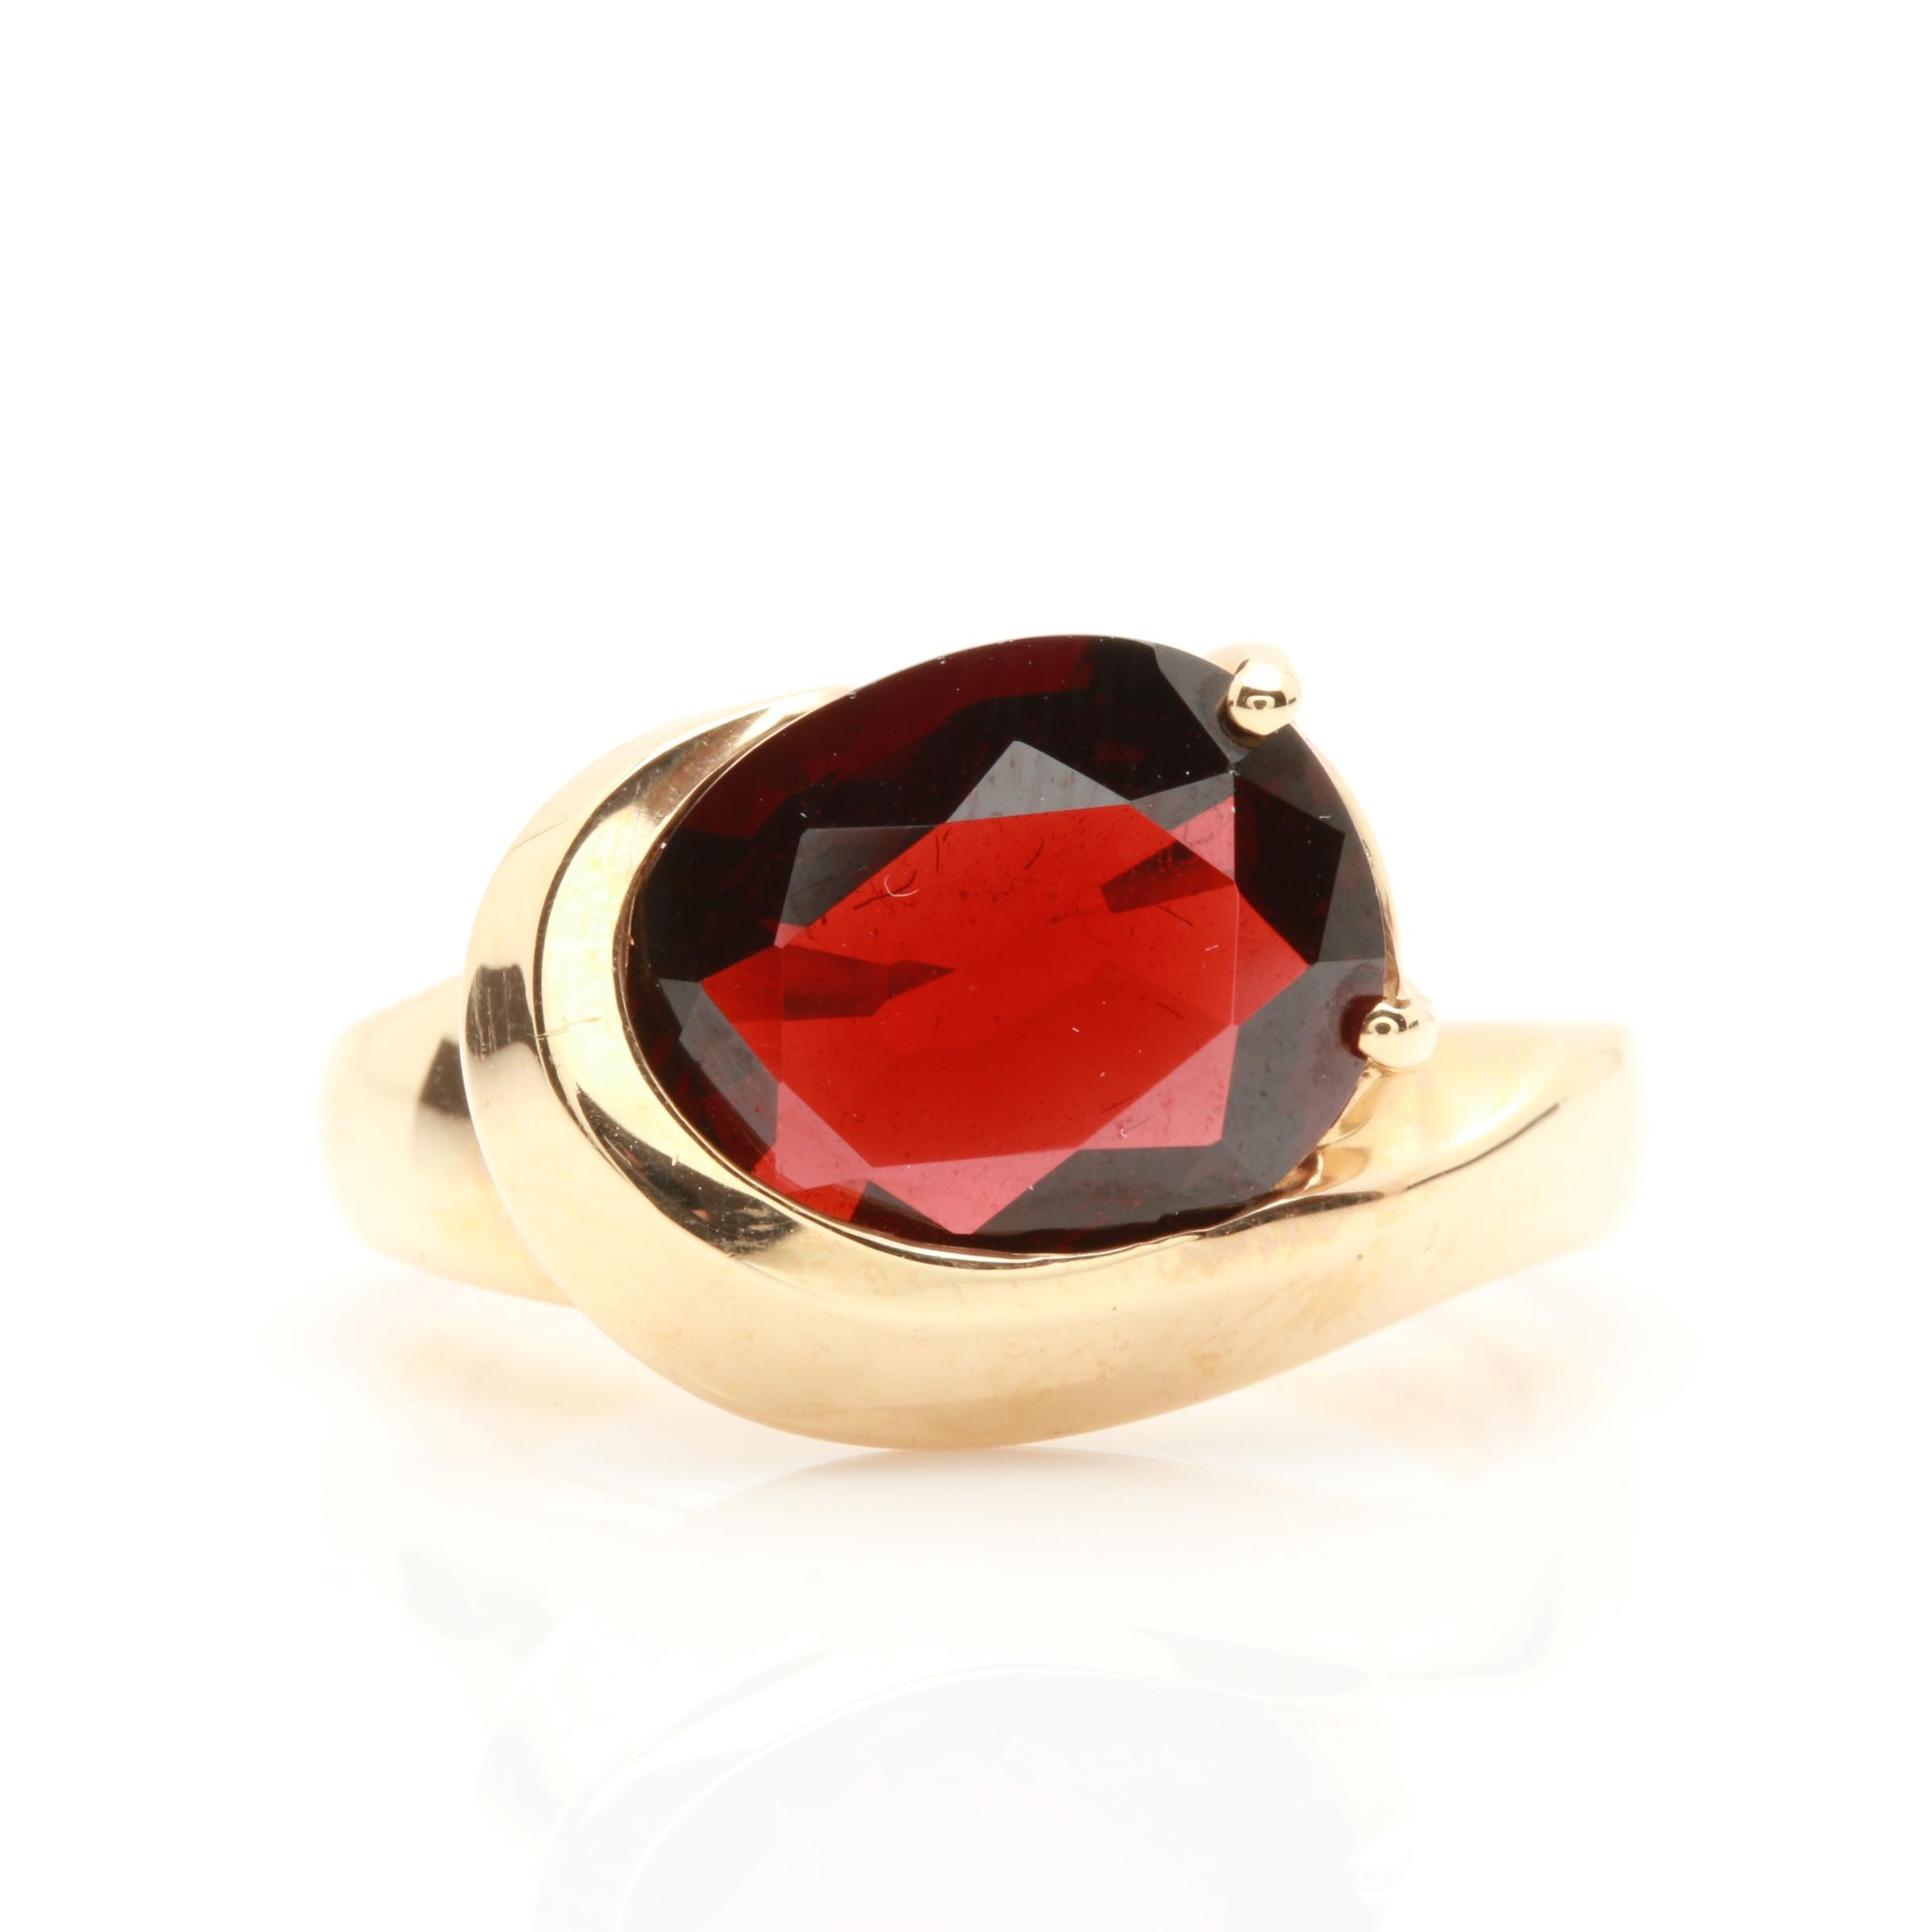 14K Yellow Gold 6.54 CT Garnet Ring